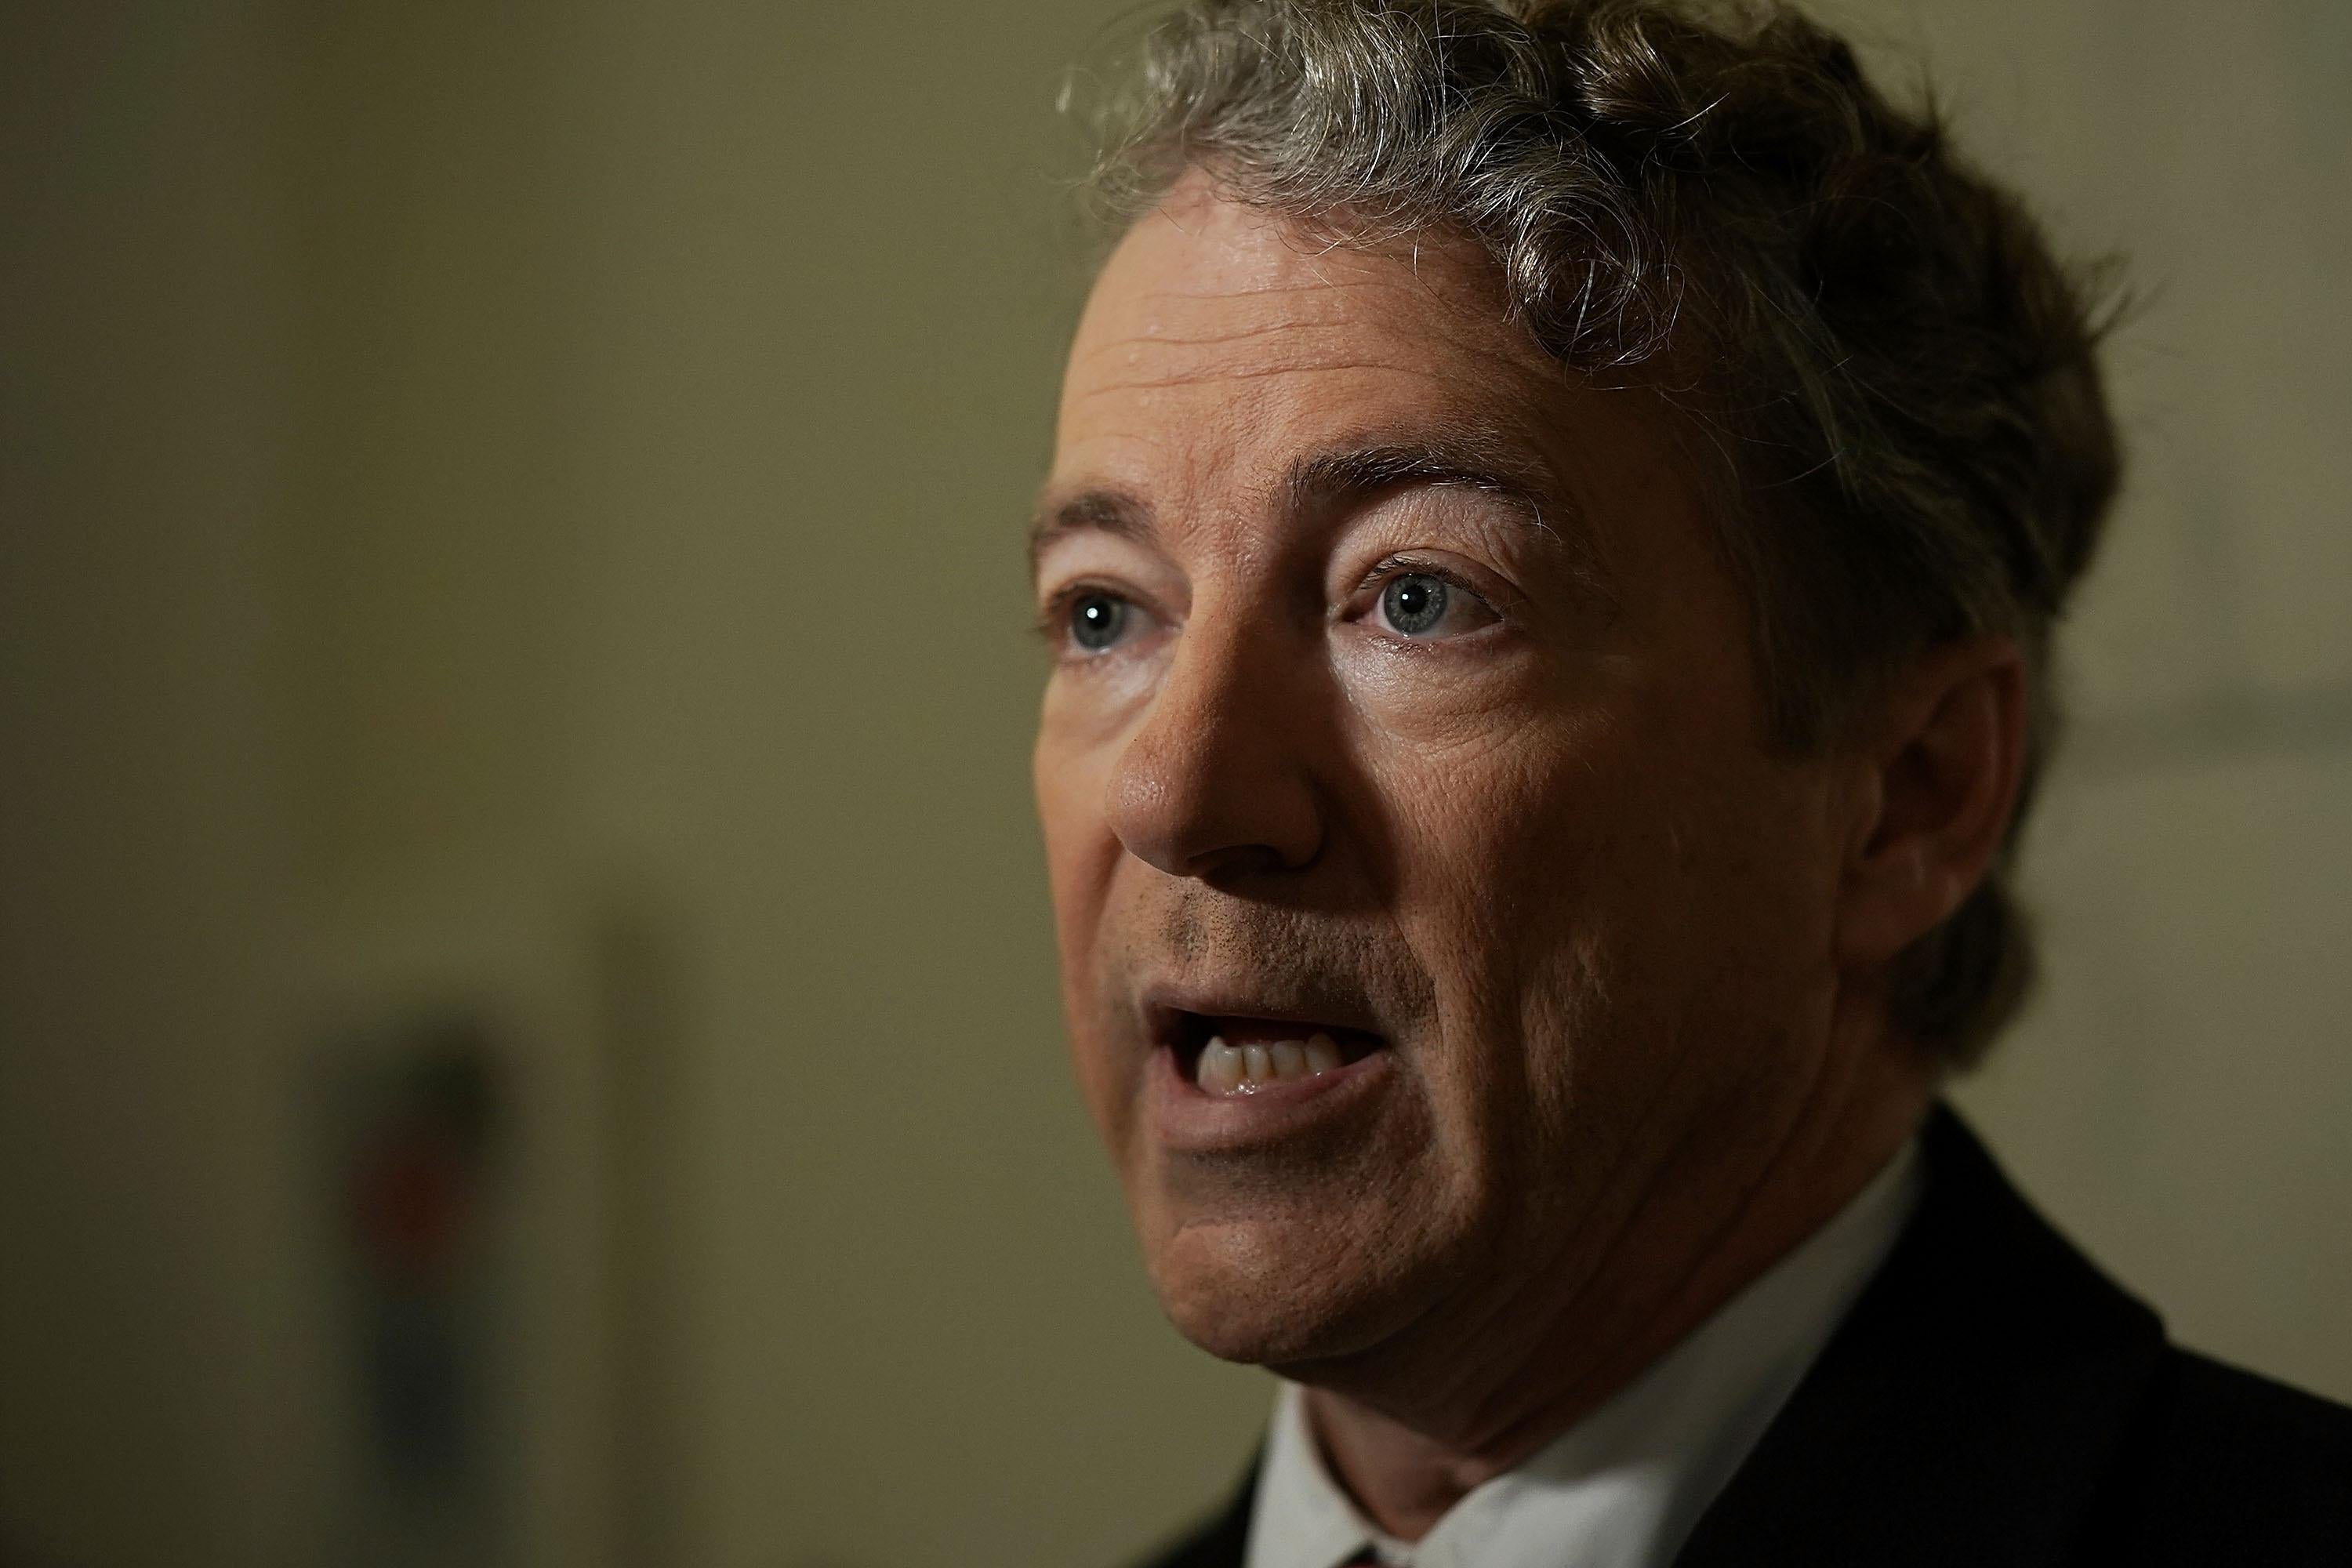 WASHINGTON, DC - FEBRUARY 08:  U.S. Sen. Rand Paul (R-KY) participates in a TV interview outside his office at Russell Senate Office Building on Capitol Hill February 8, 2018 in Washington, DC. Sen. Paul made a move to block a budget deal Thursday as the government will run out of funding at midnight for seeking to vote on an amendment to restore budget caps.  (Photo by Alex Wong/Getty Images)